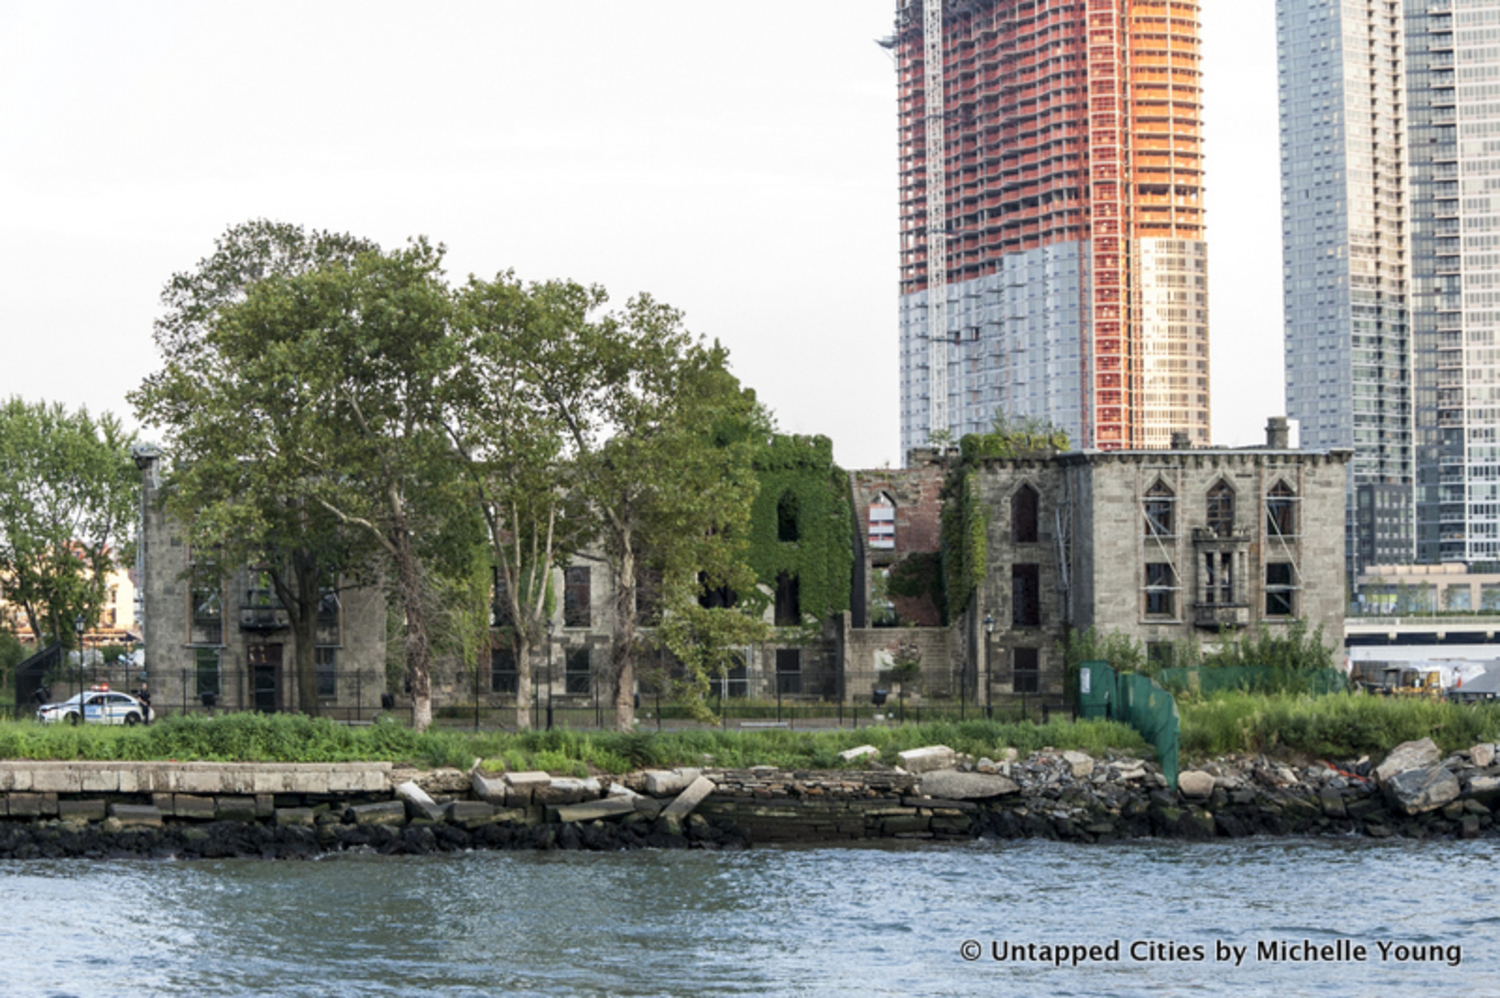 The ruins of the former Renwick Smallpox Hospital, just south of the site of the future campus, and a landmarked New York City ruin.